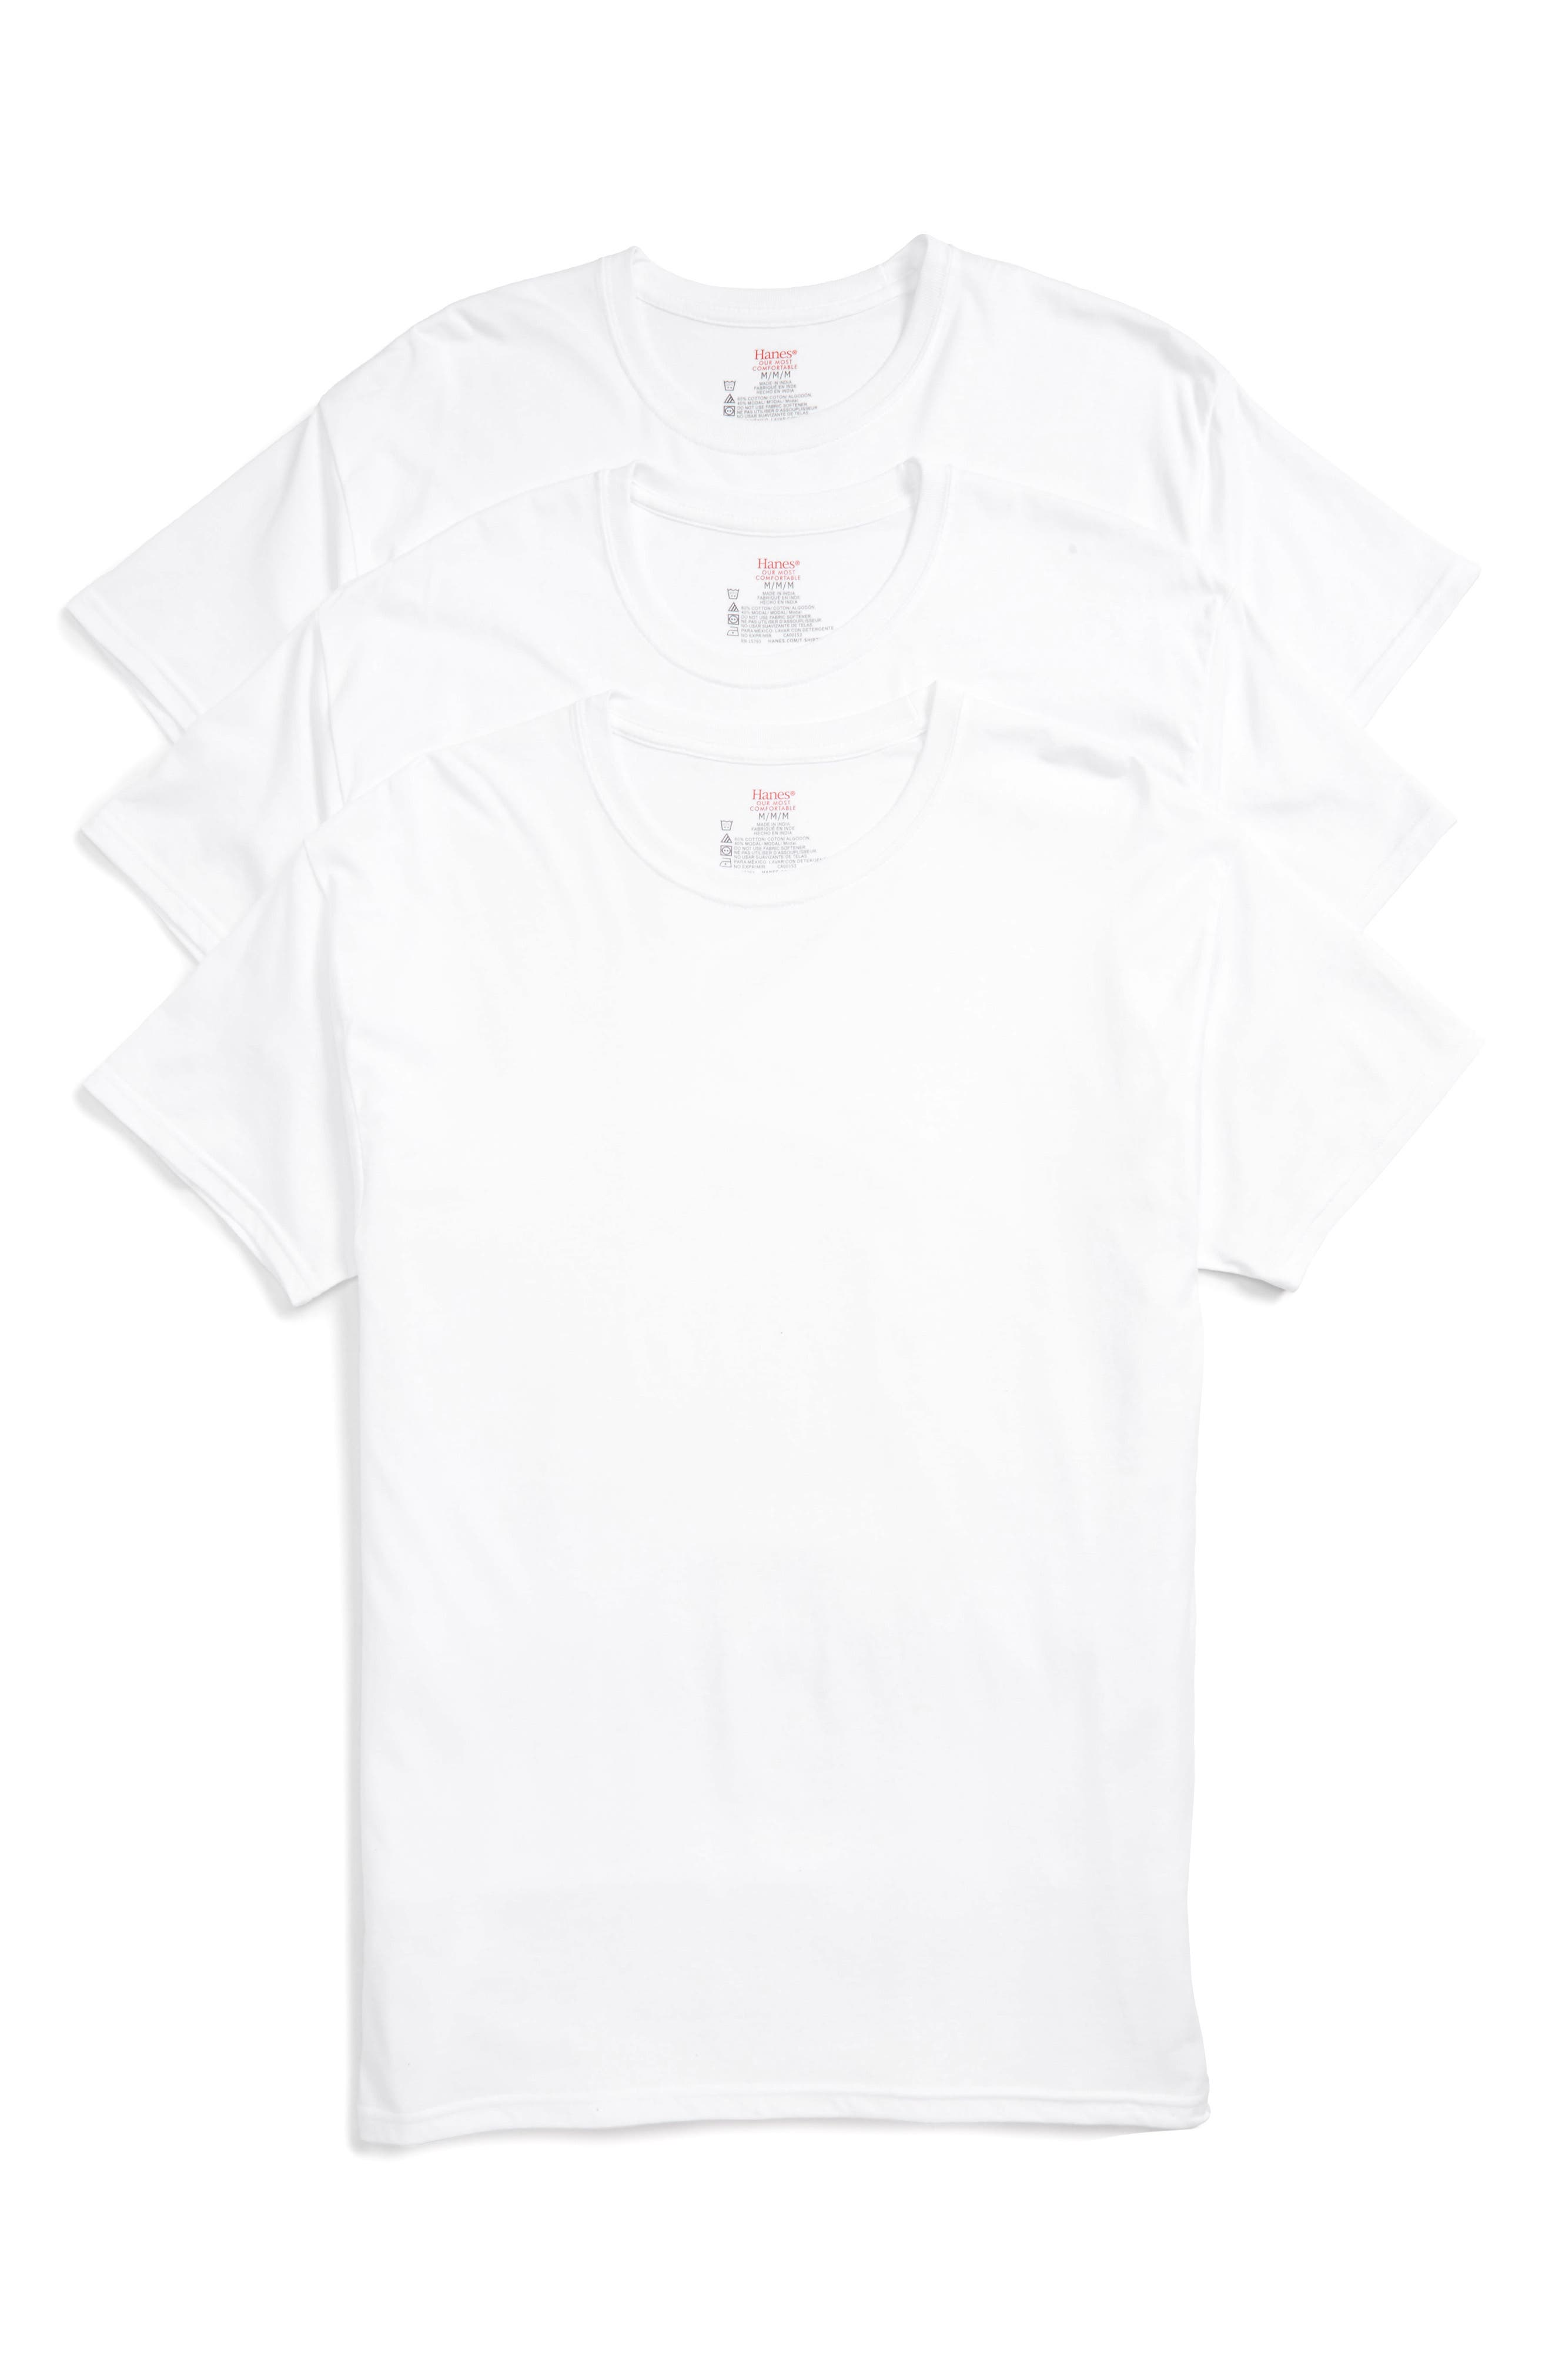 Alternate Image 1 Selected - Hanes Luxury Essentials 3-Pack T-Shirt